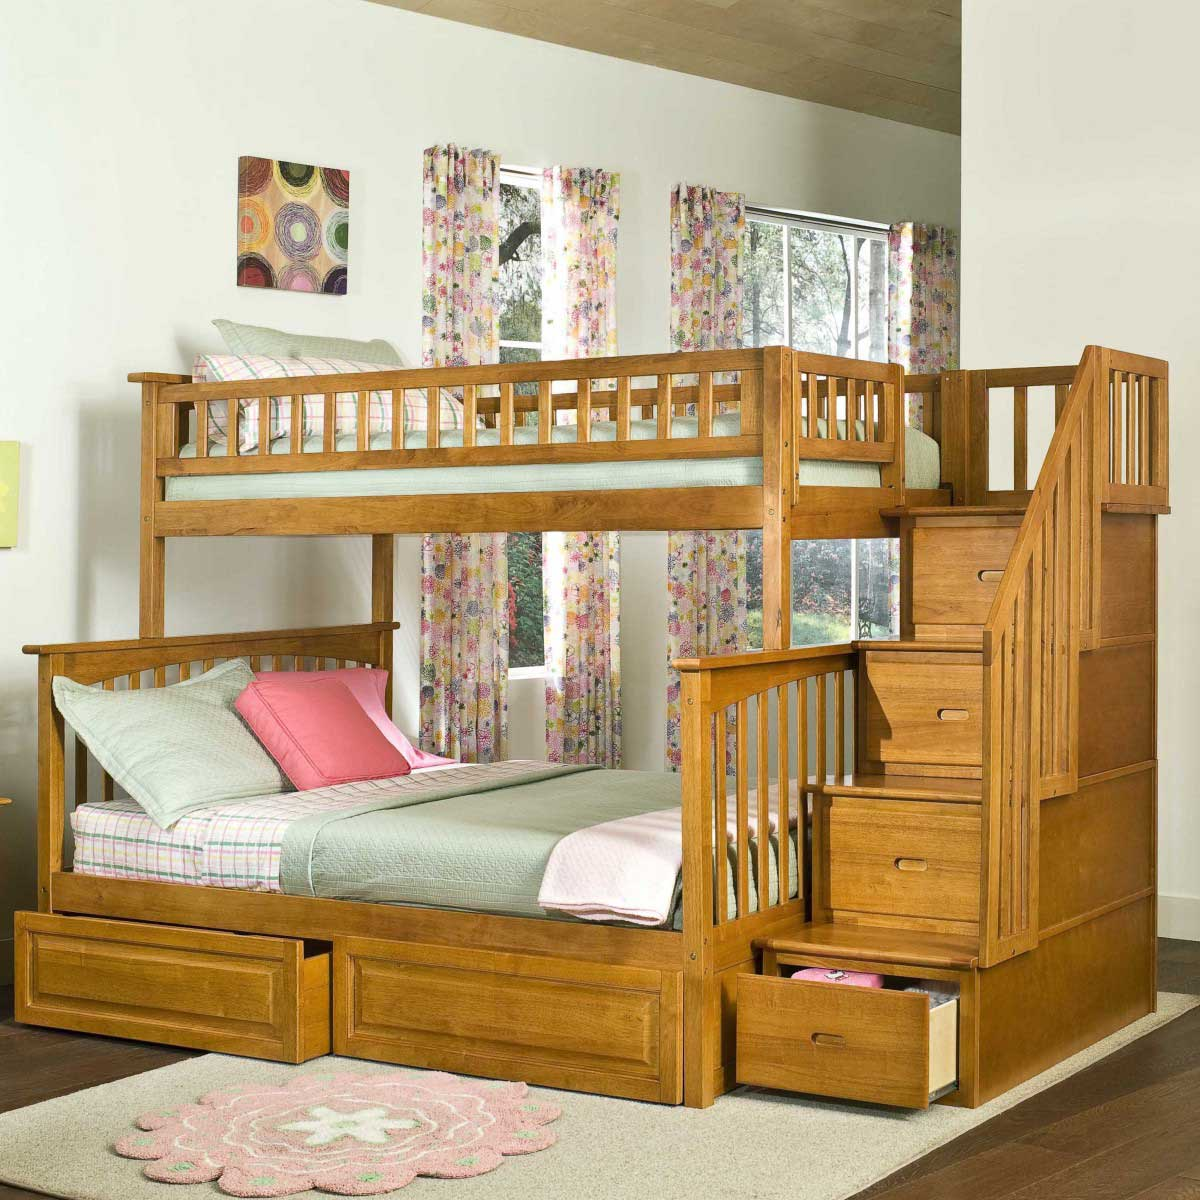 exciting peru wood loft beds for teenagers with stair and drawers on wooden floor with white rug matched with white wall with windows and curtains for teenager room ideas